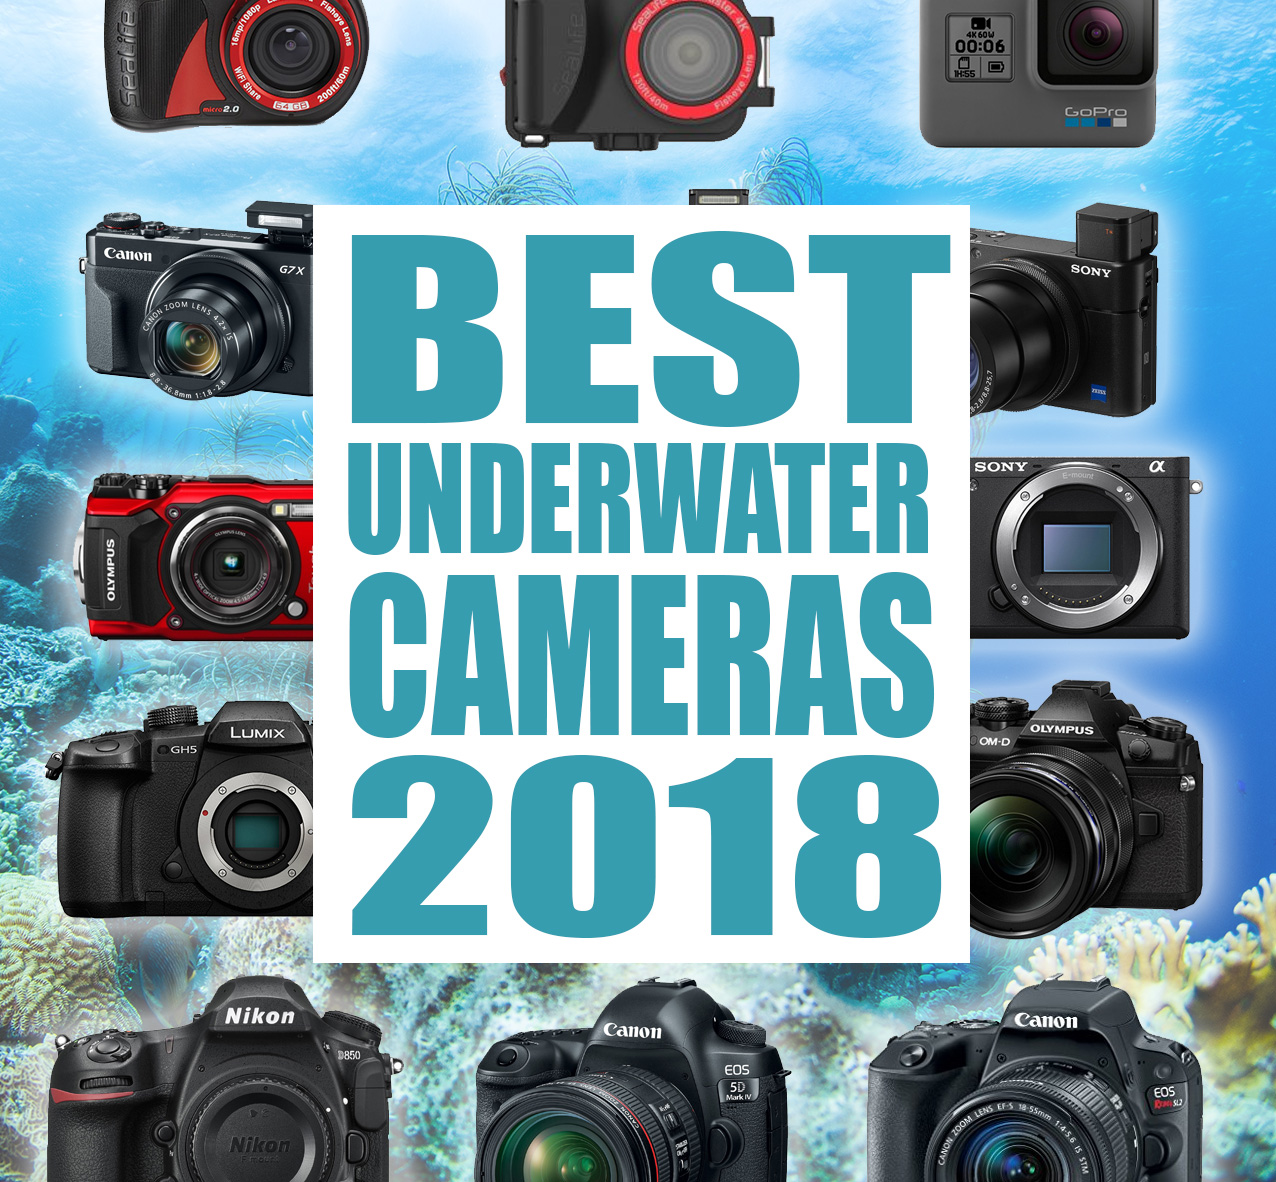 Camera for underwater shooting. Underwater camera - reviews, prices 80